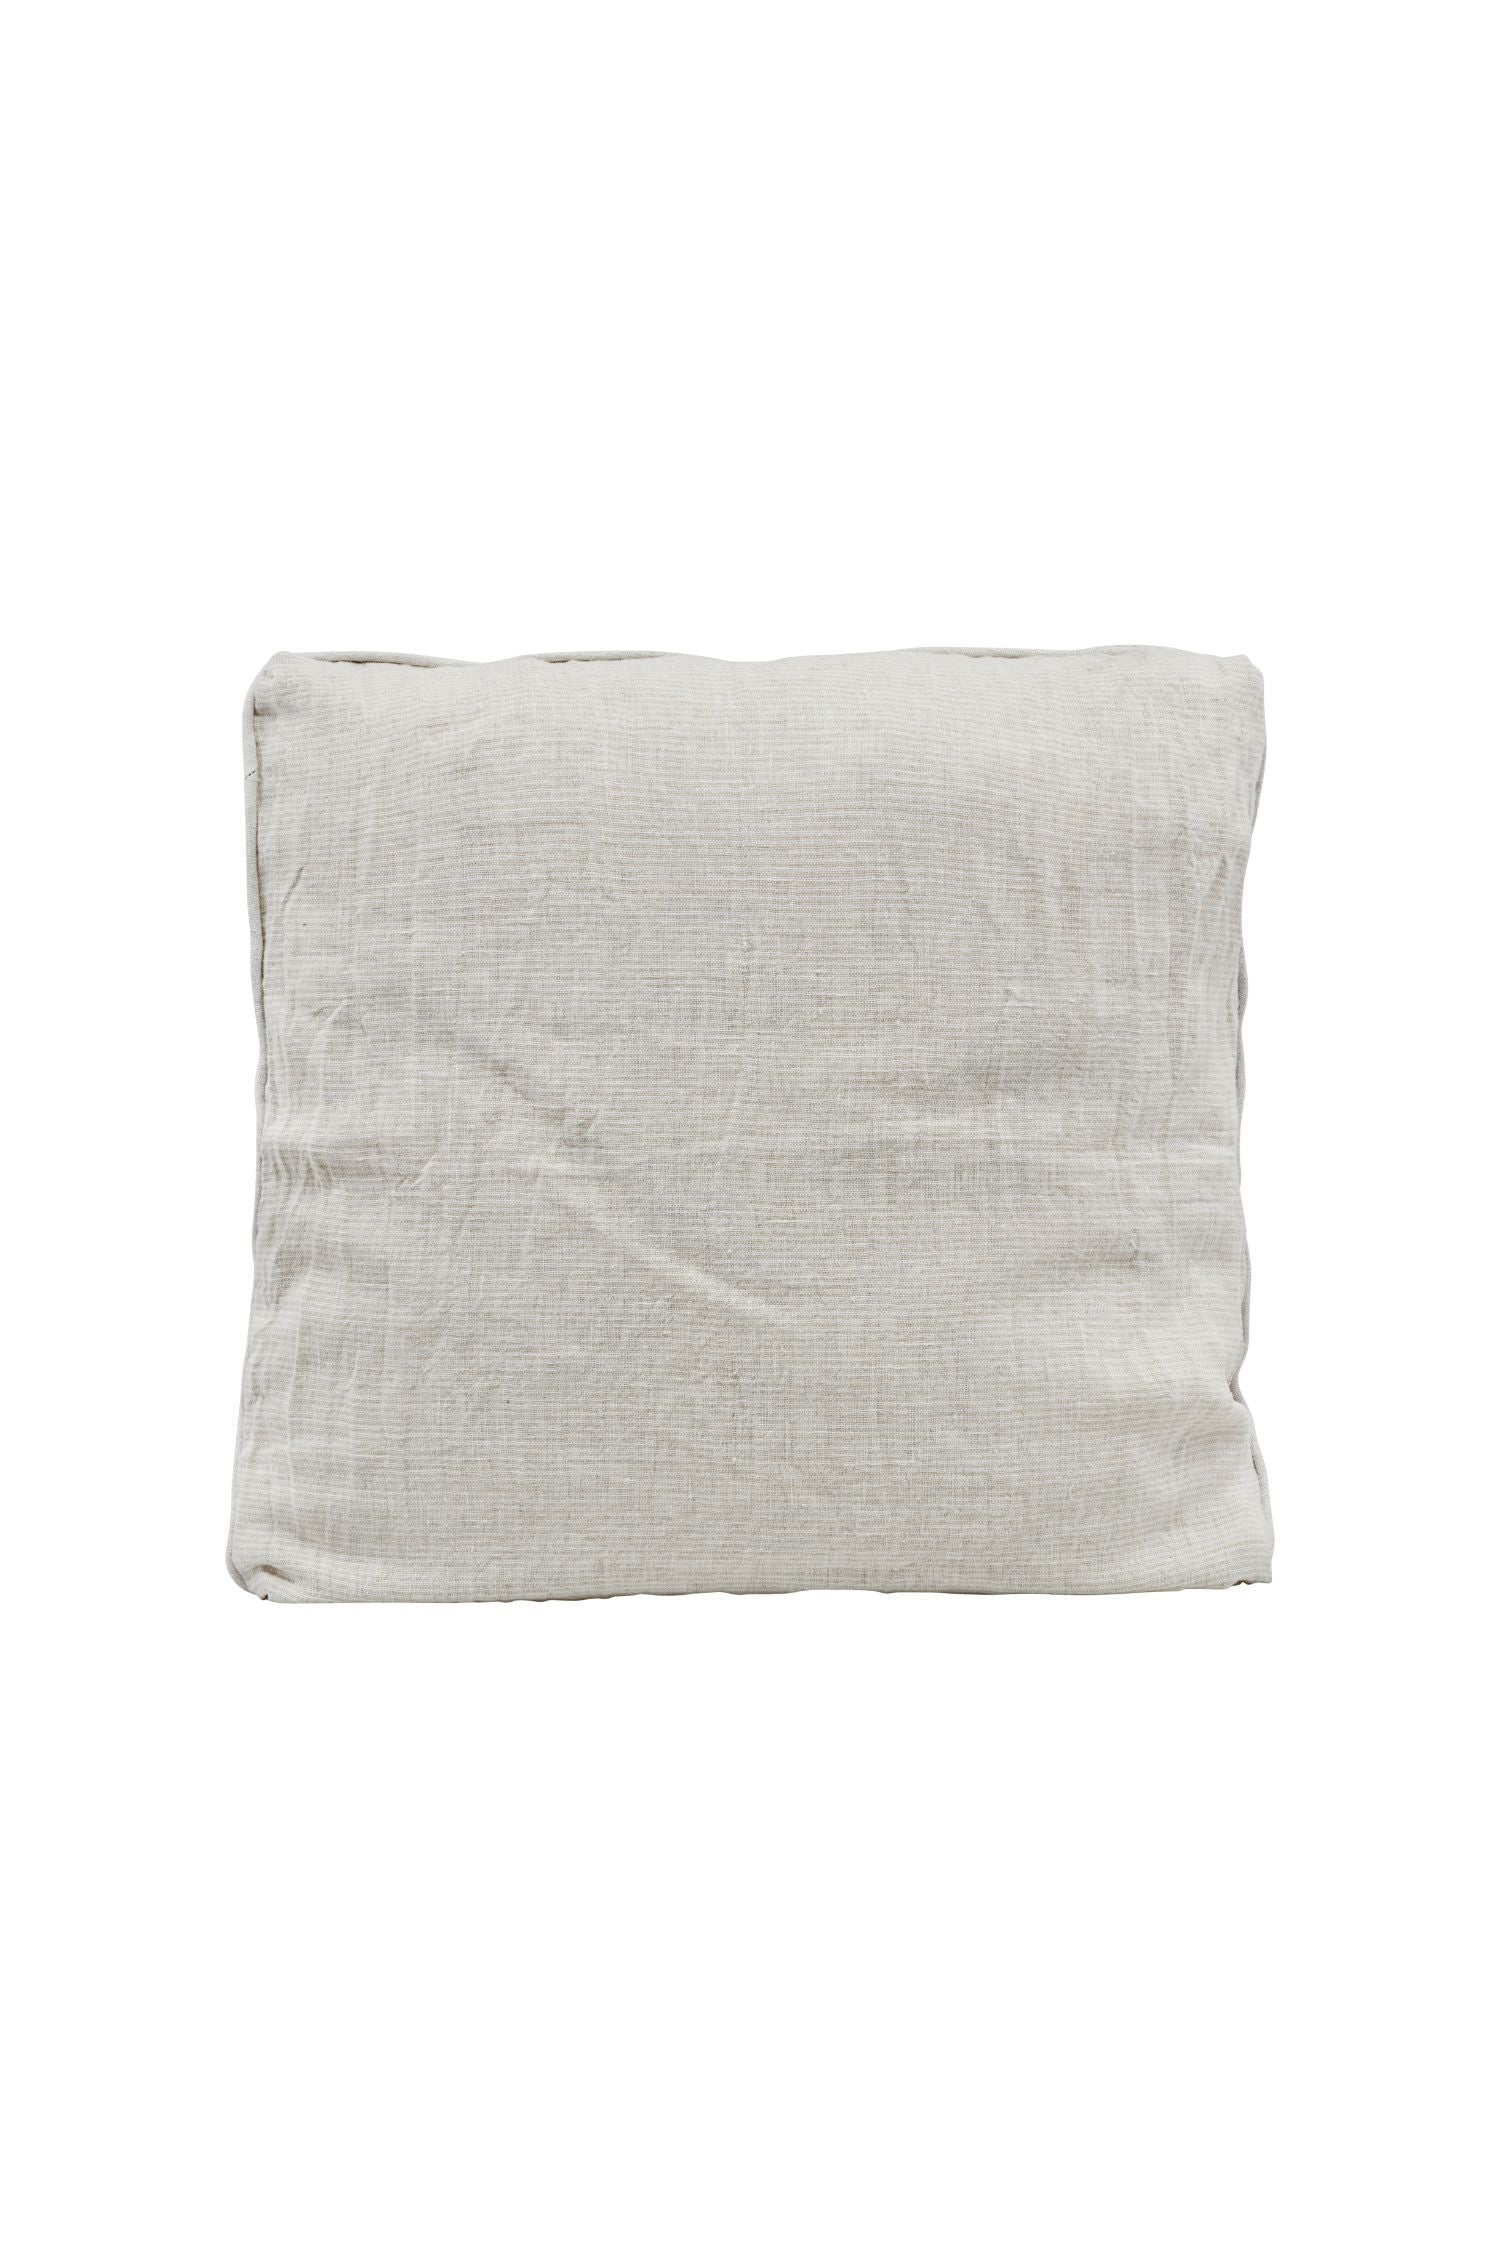 kanpur cushion cover sand